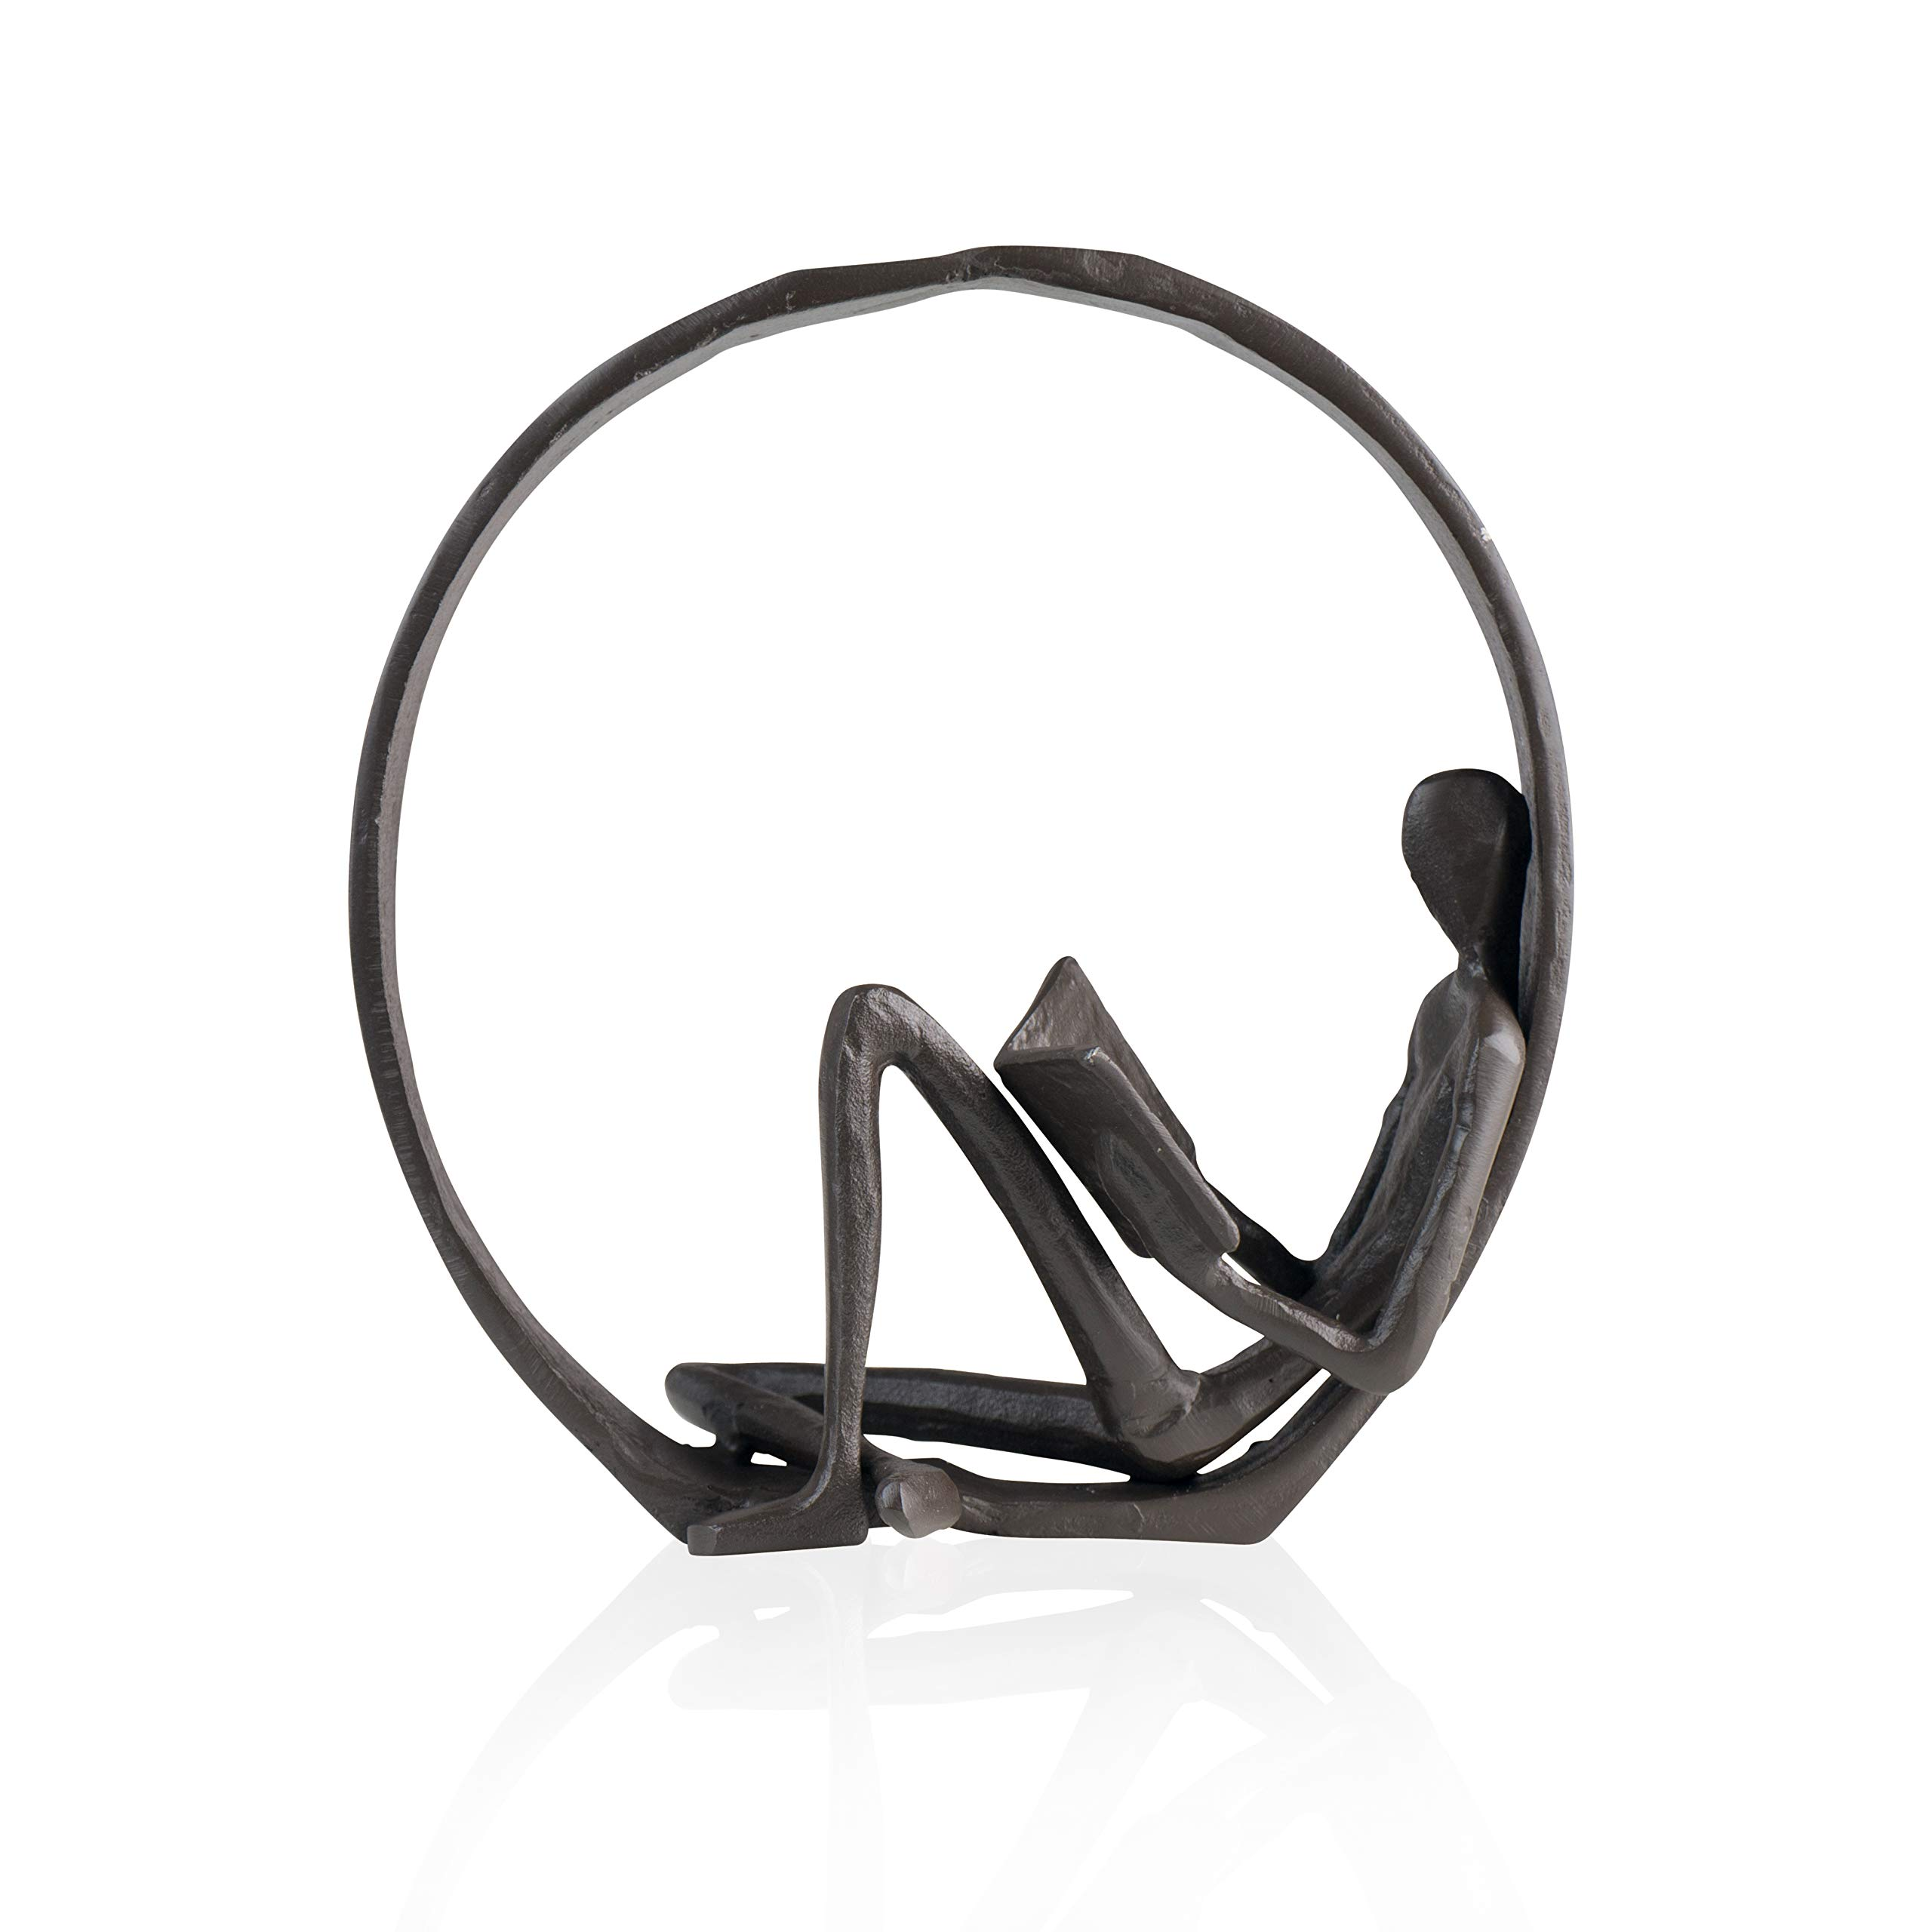 Danya B Small Iron Sculpture Accent Piece, Gift for Readers, Teachers, and More, Old-Fashioned Decorative Object for Home, Office, Table and Desktop Decor by Danya B